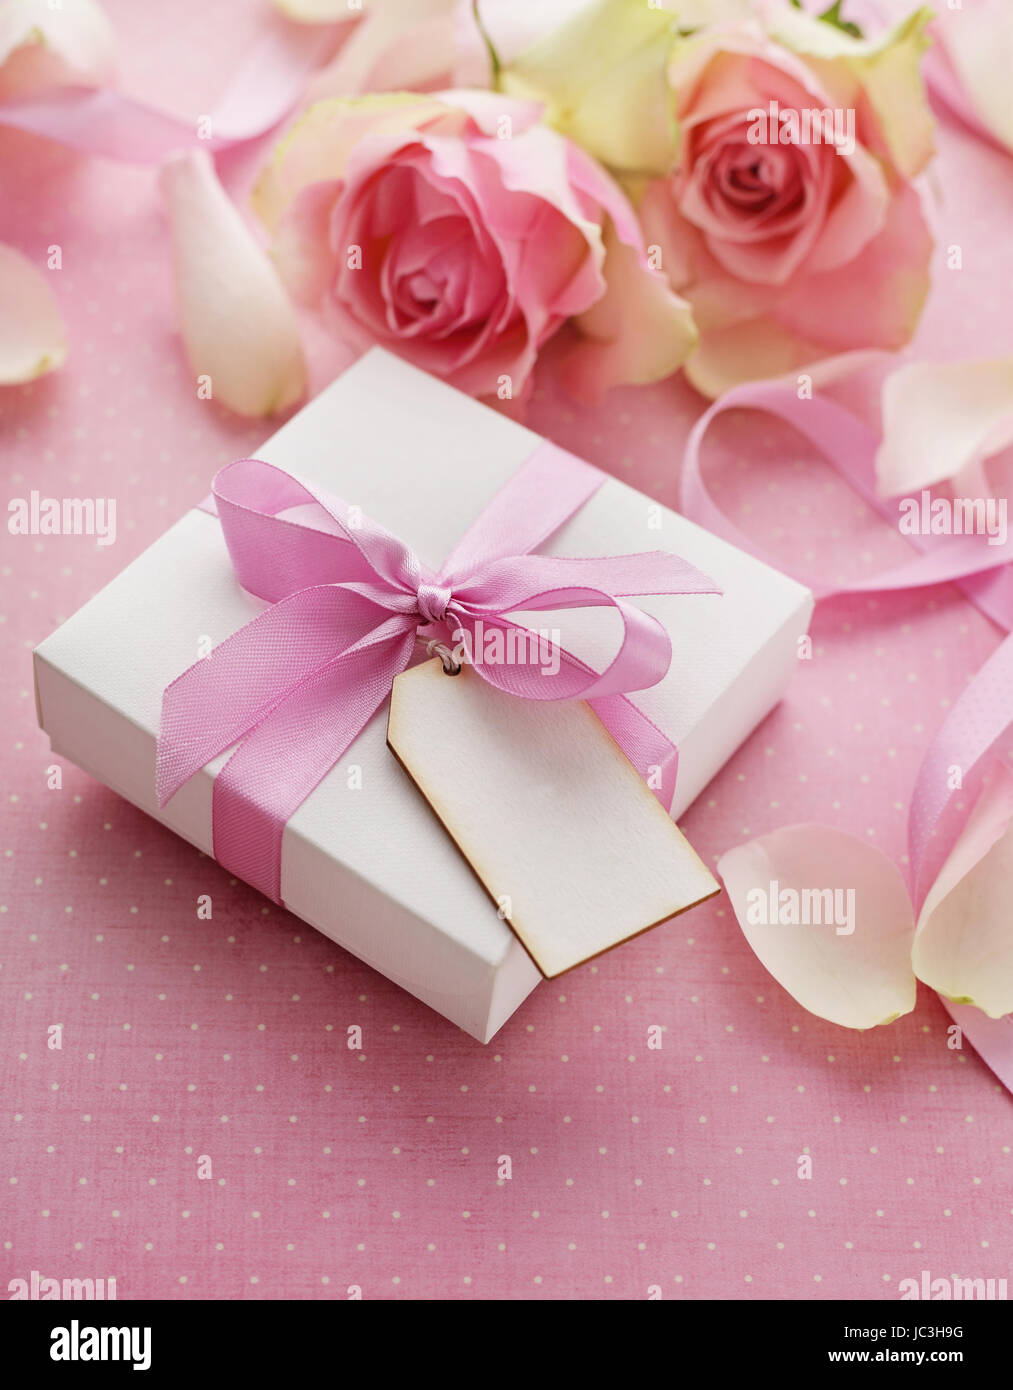 Gift Box Tied With Pink Ribbon Bow Rose Flowers Stock Photo